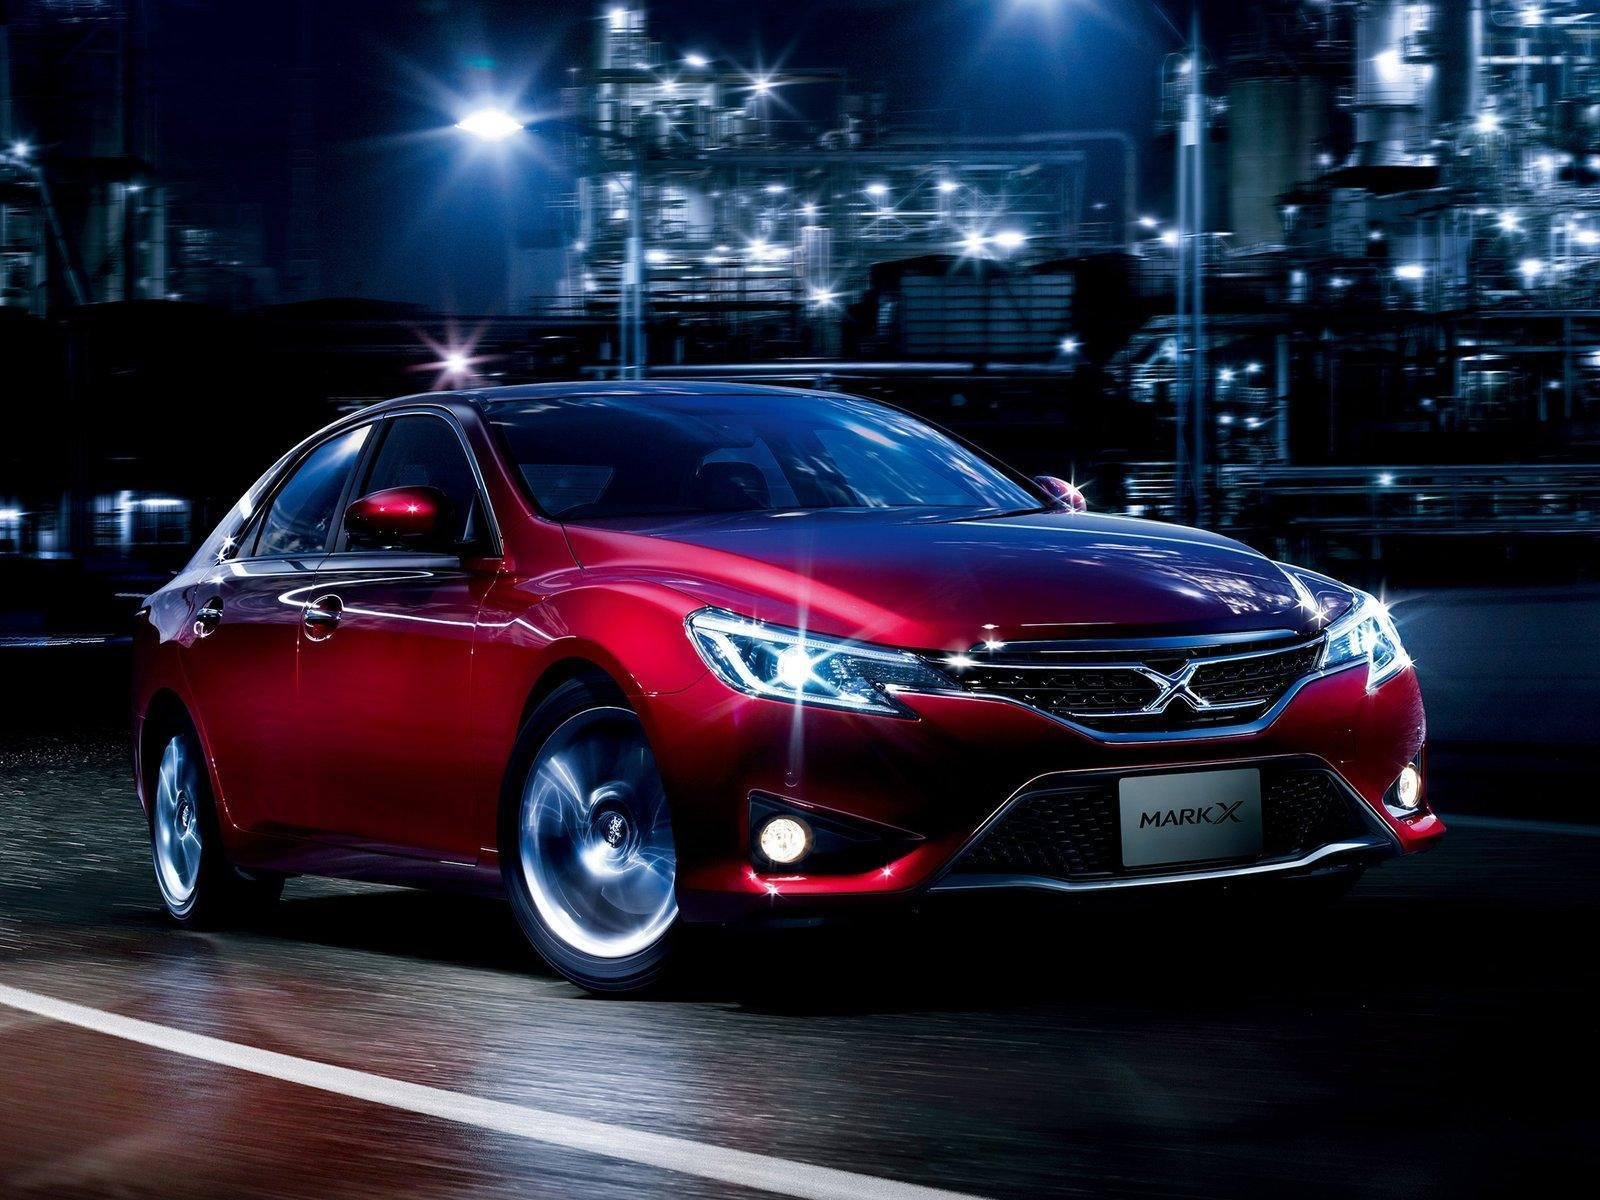 Luxury Car Iphone Wallpaper 2013 Toyota Mark X Picture 470233 Car Review Top Speed